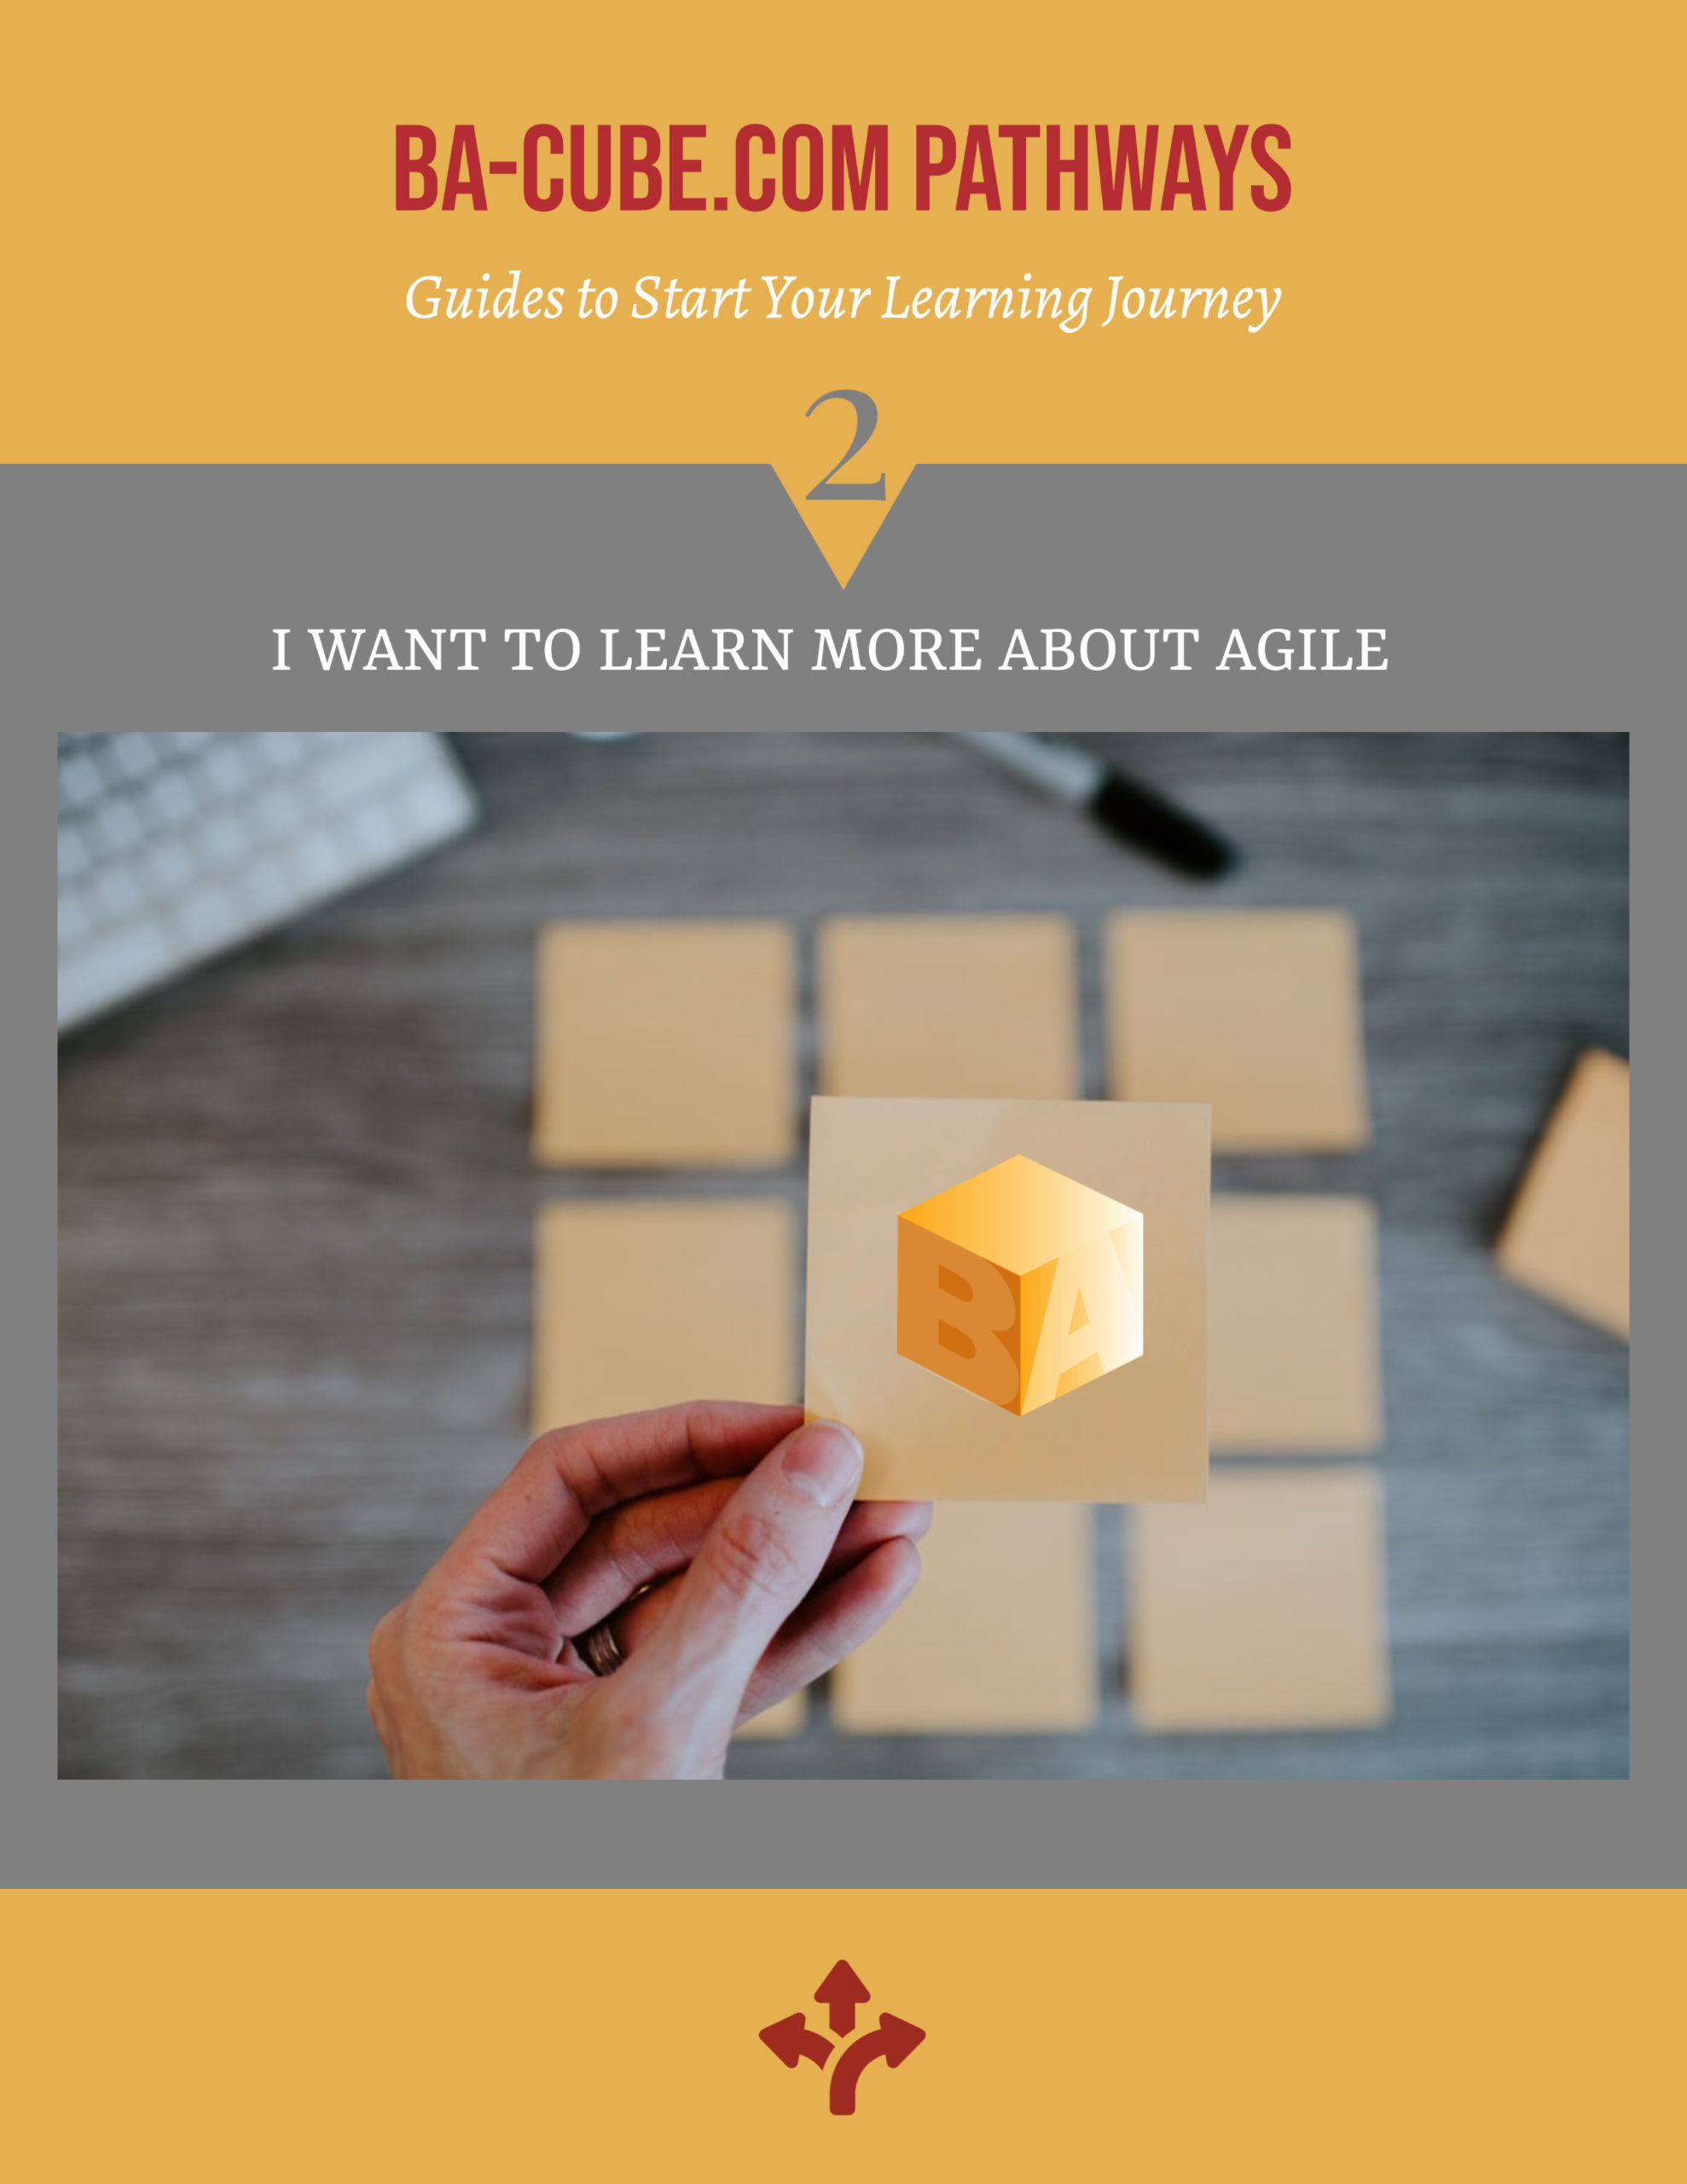 Pathway 2: Learn More About Agile